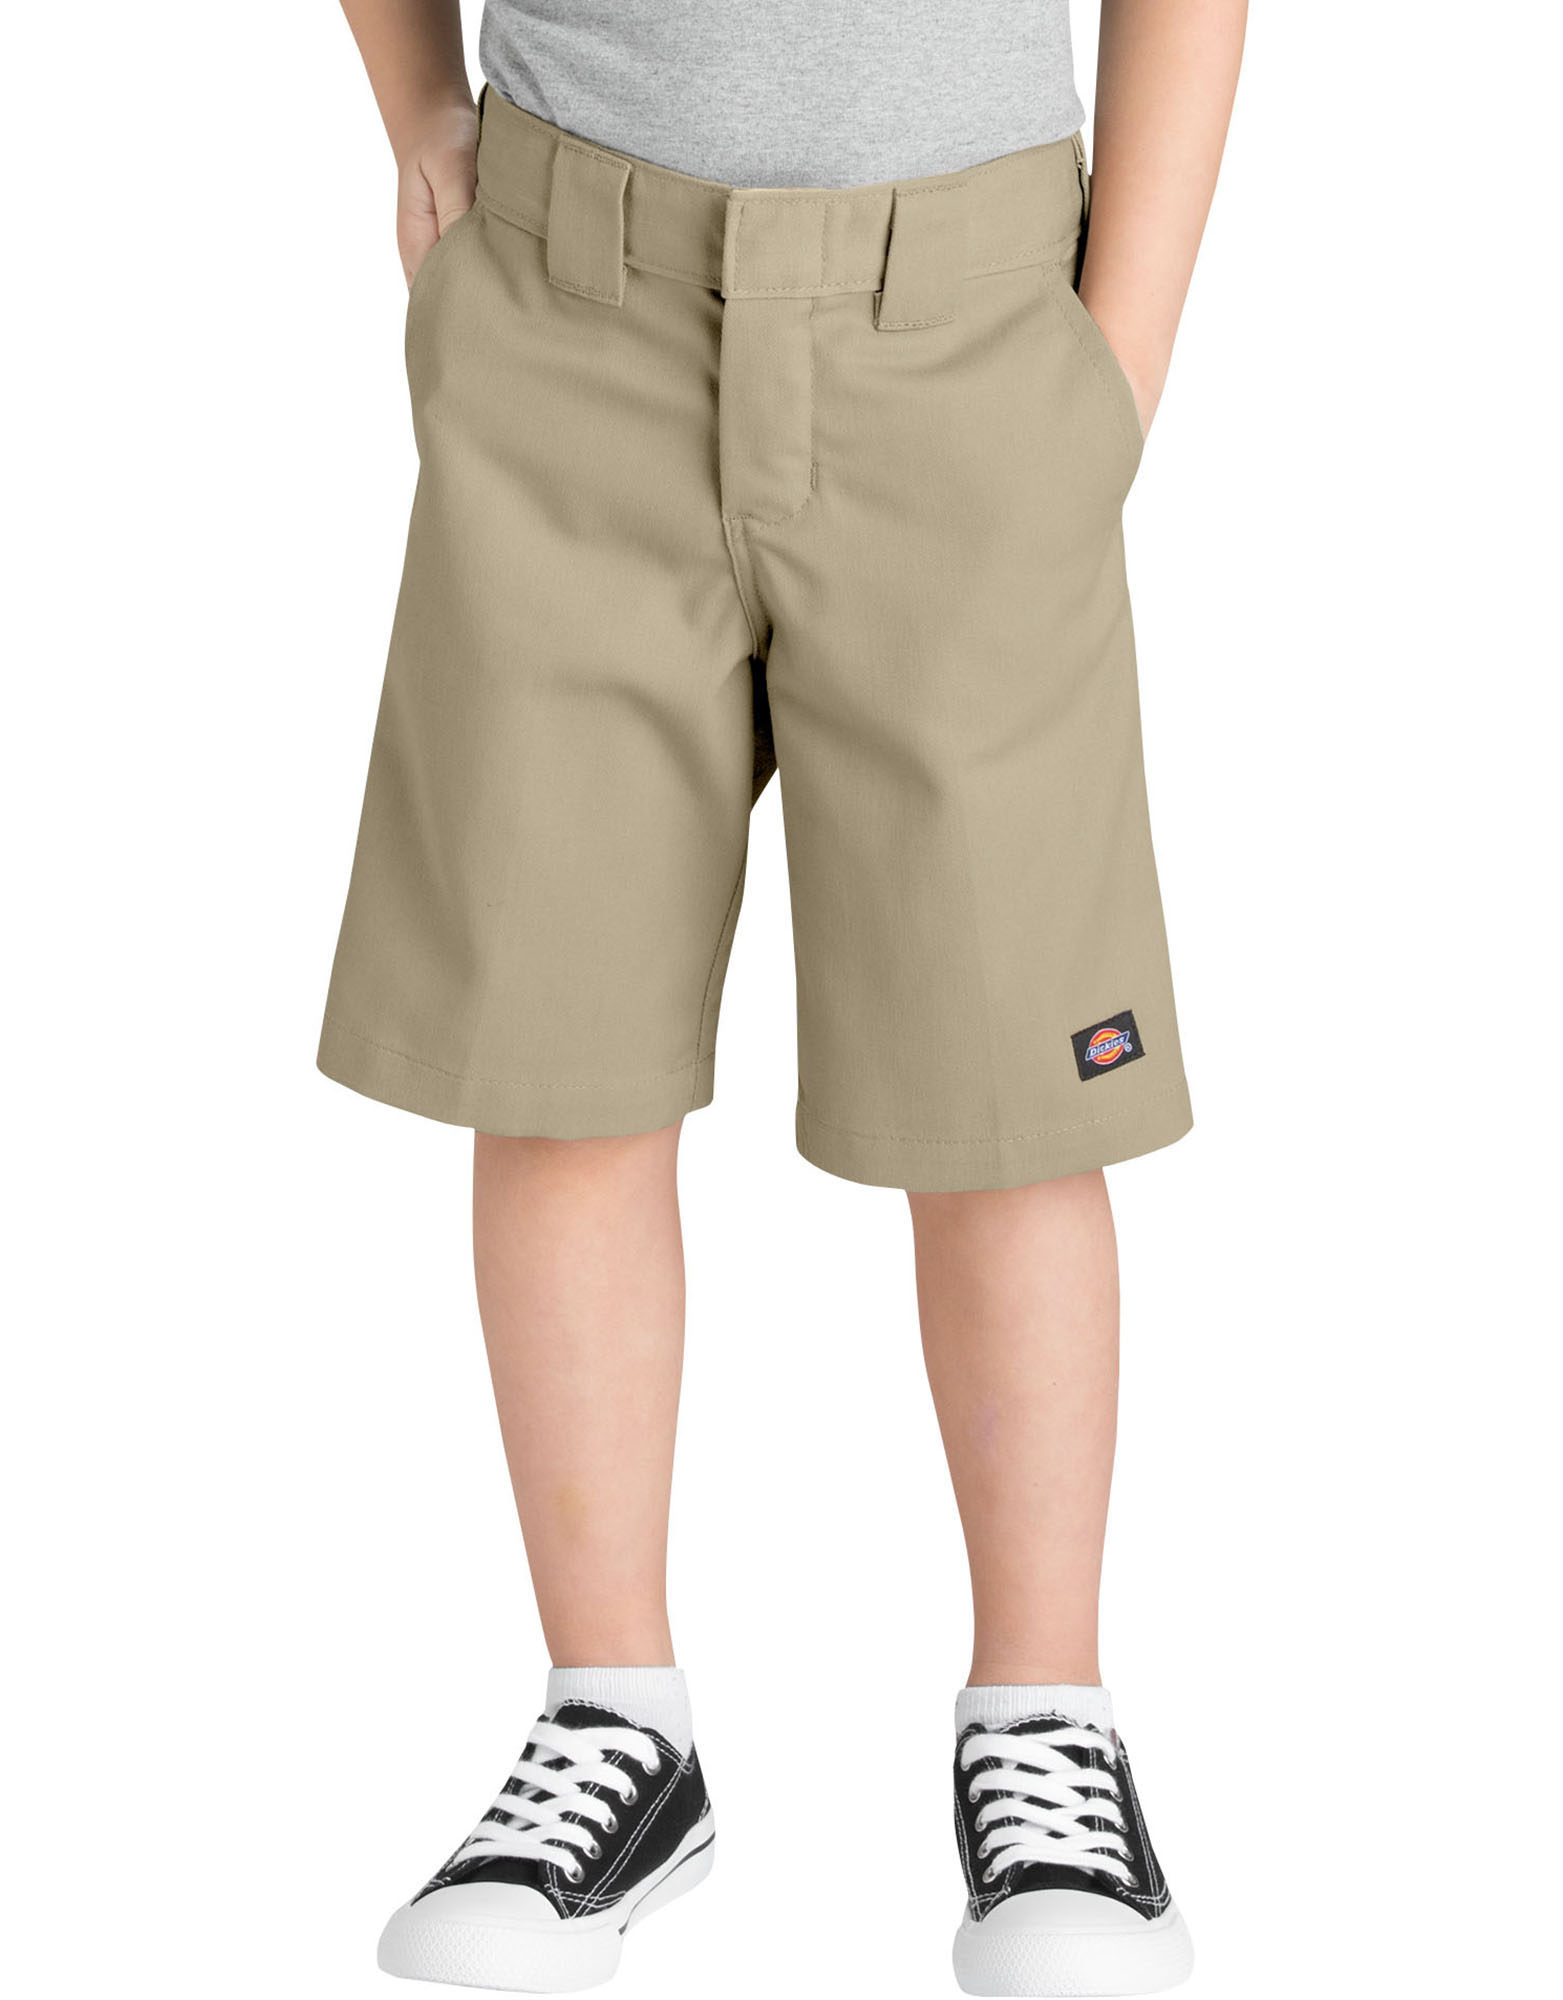 Boys' Relaxed Fit Shorts with Extra Pocket, 4-7 - Desert Khaki (DS)